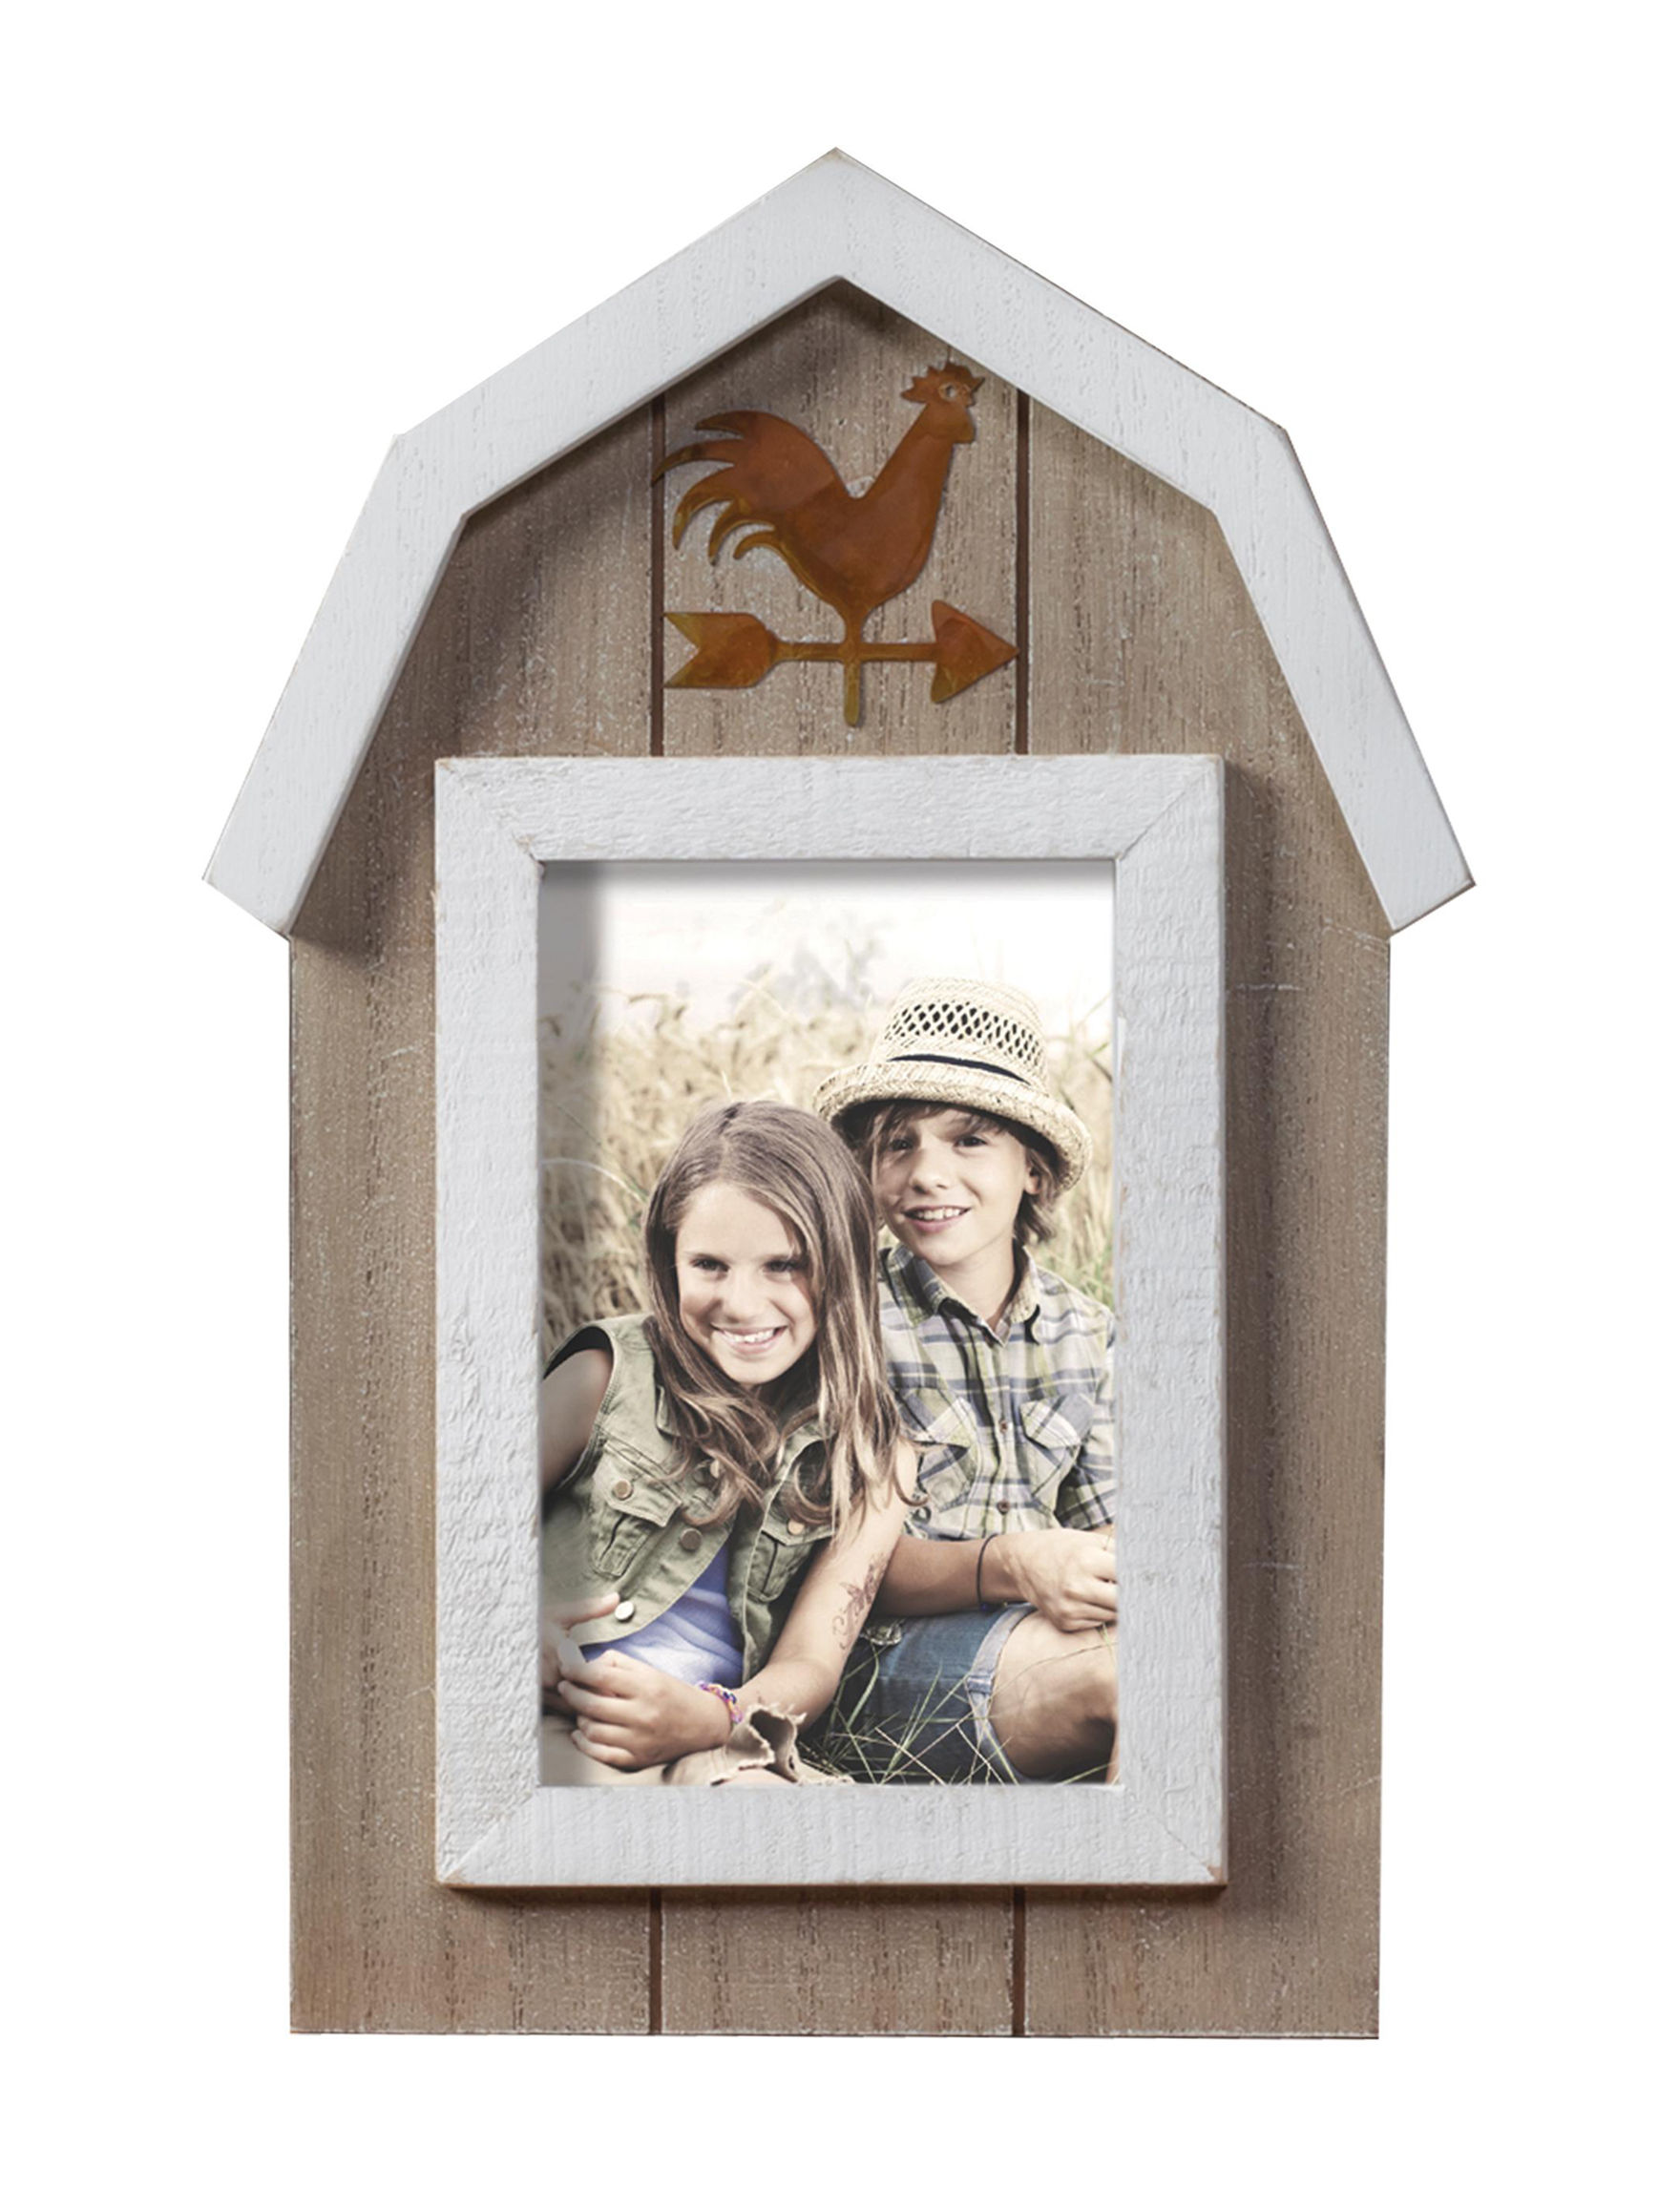 prinz frames shadow boxes home accents